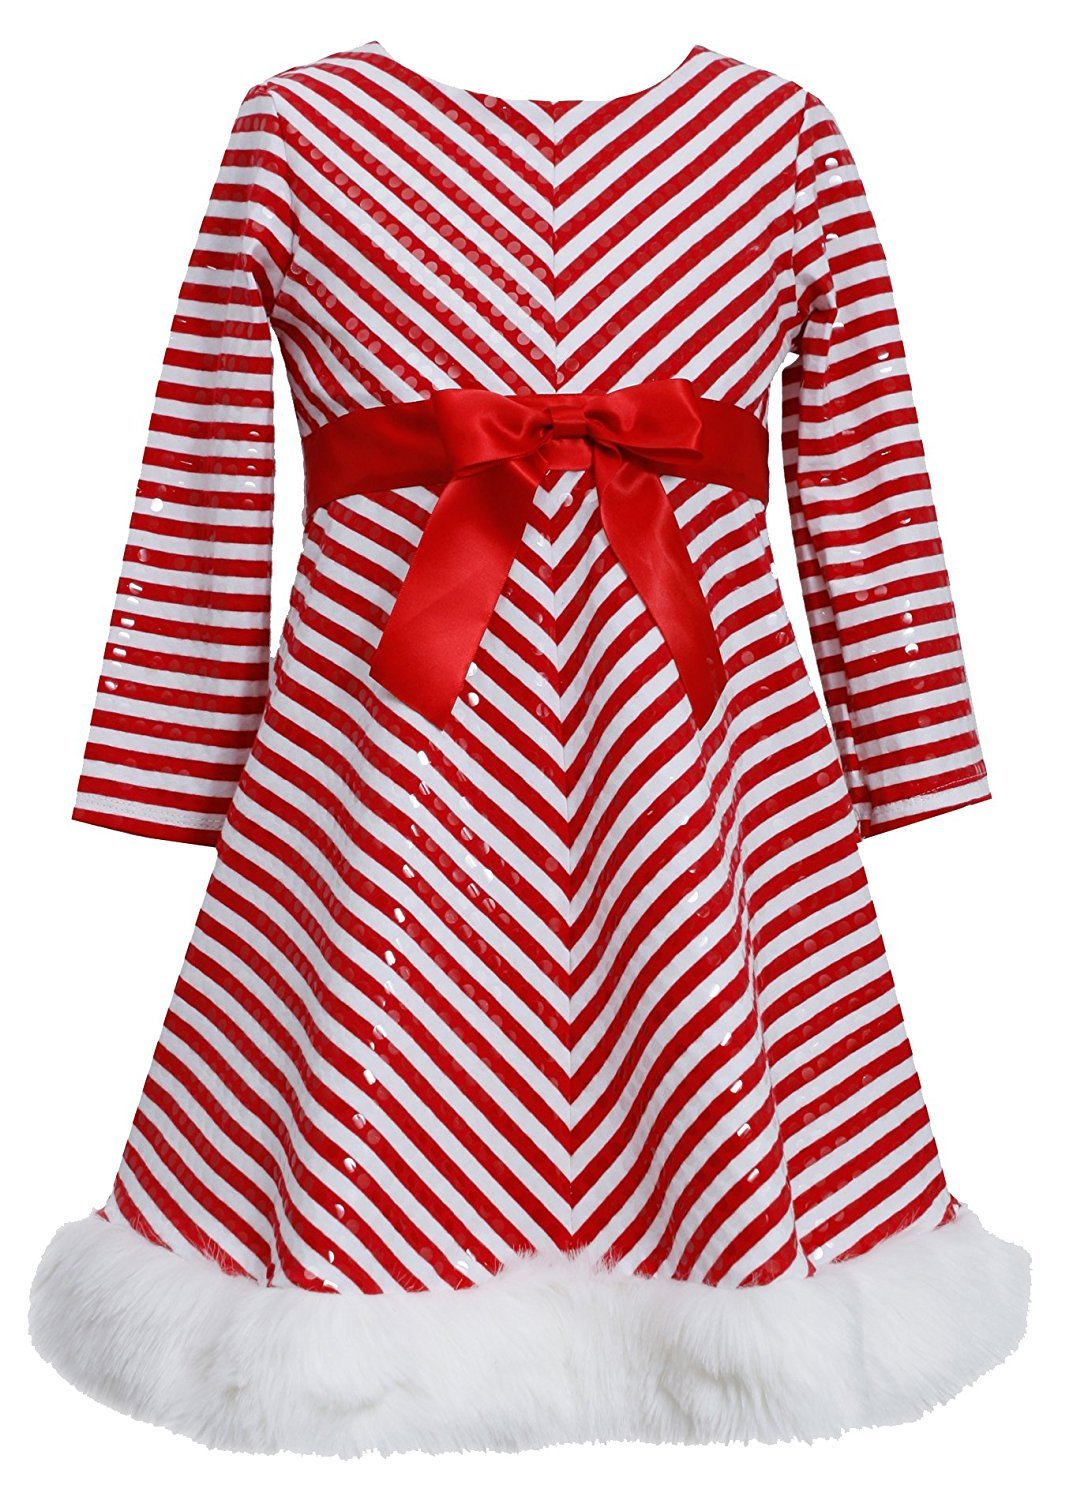 Big Girl Tween 7-16 Red White Mitered Stripe Santa Dress, Bonnie Jean